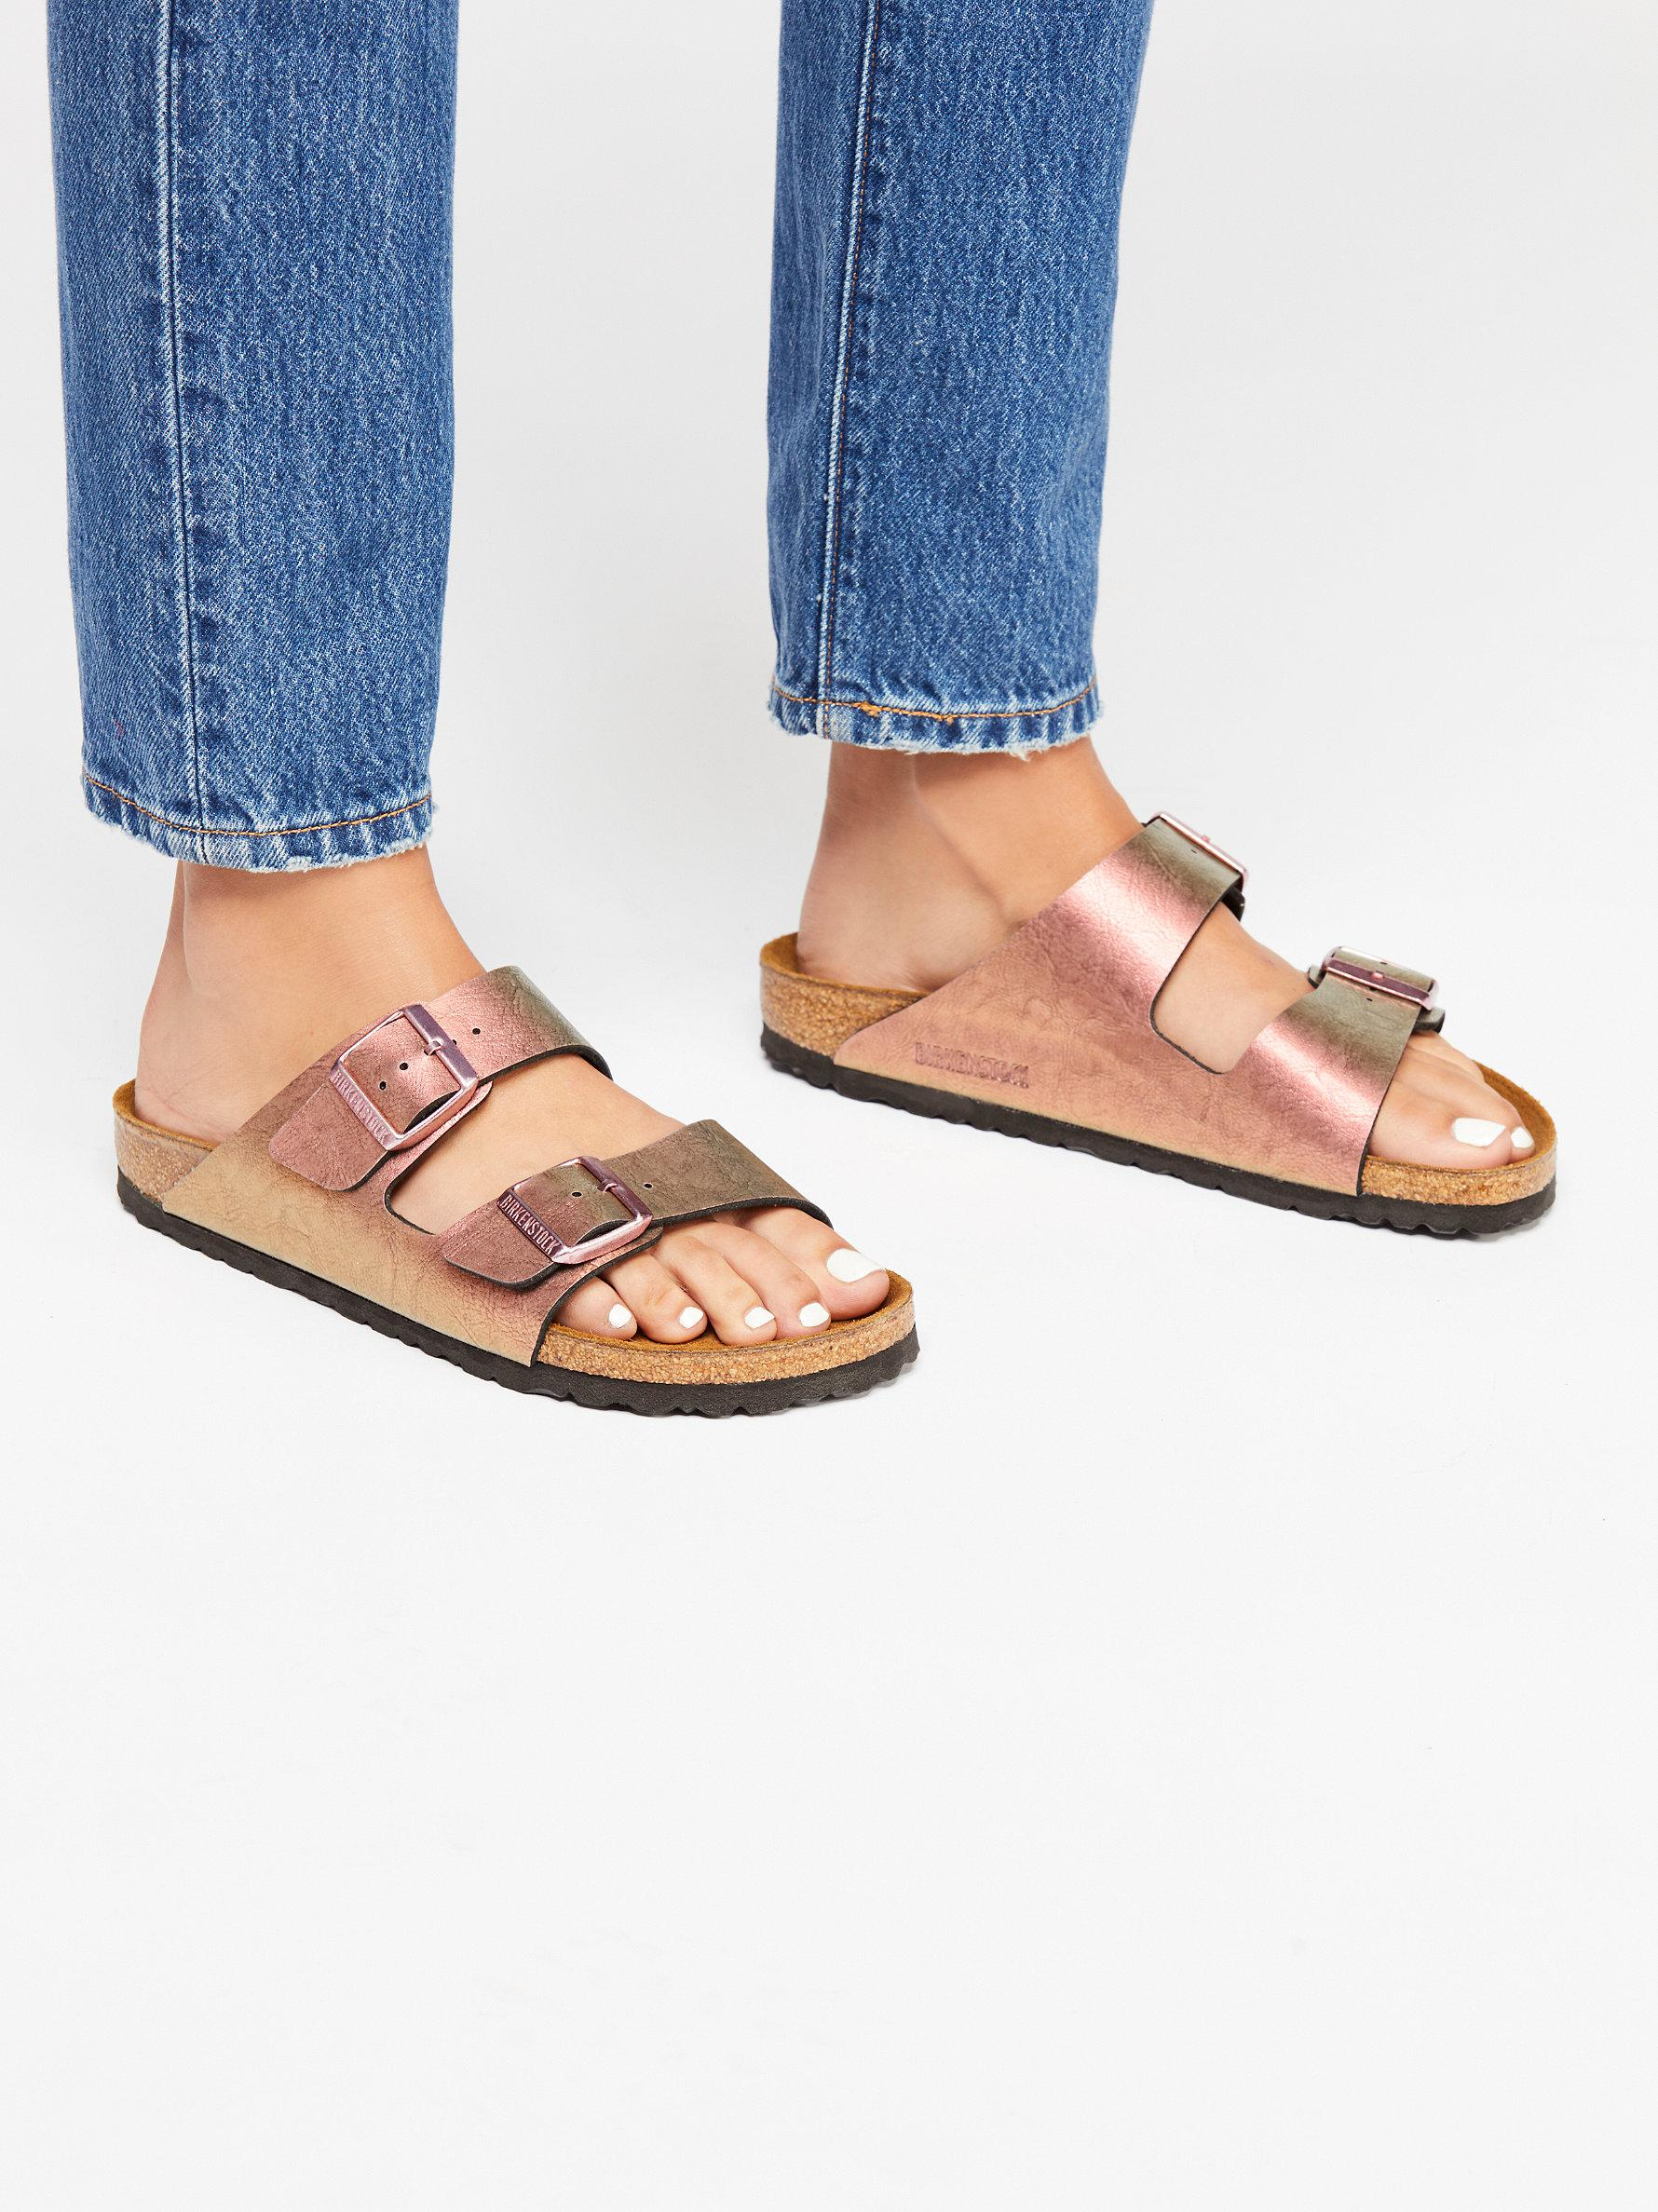 93638e0870e24 Lyst - Free People Arizona Metallic Birkenstocks